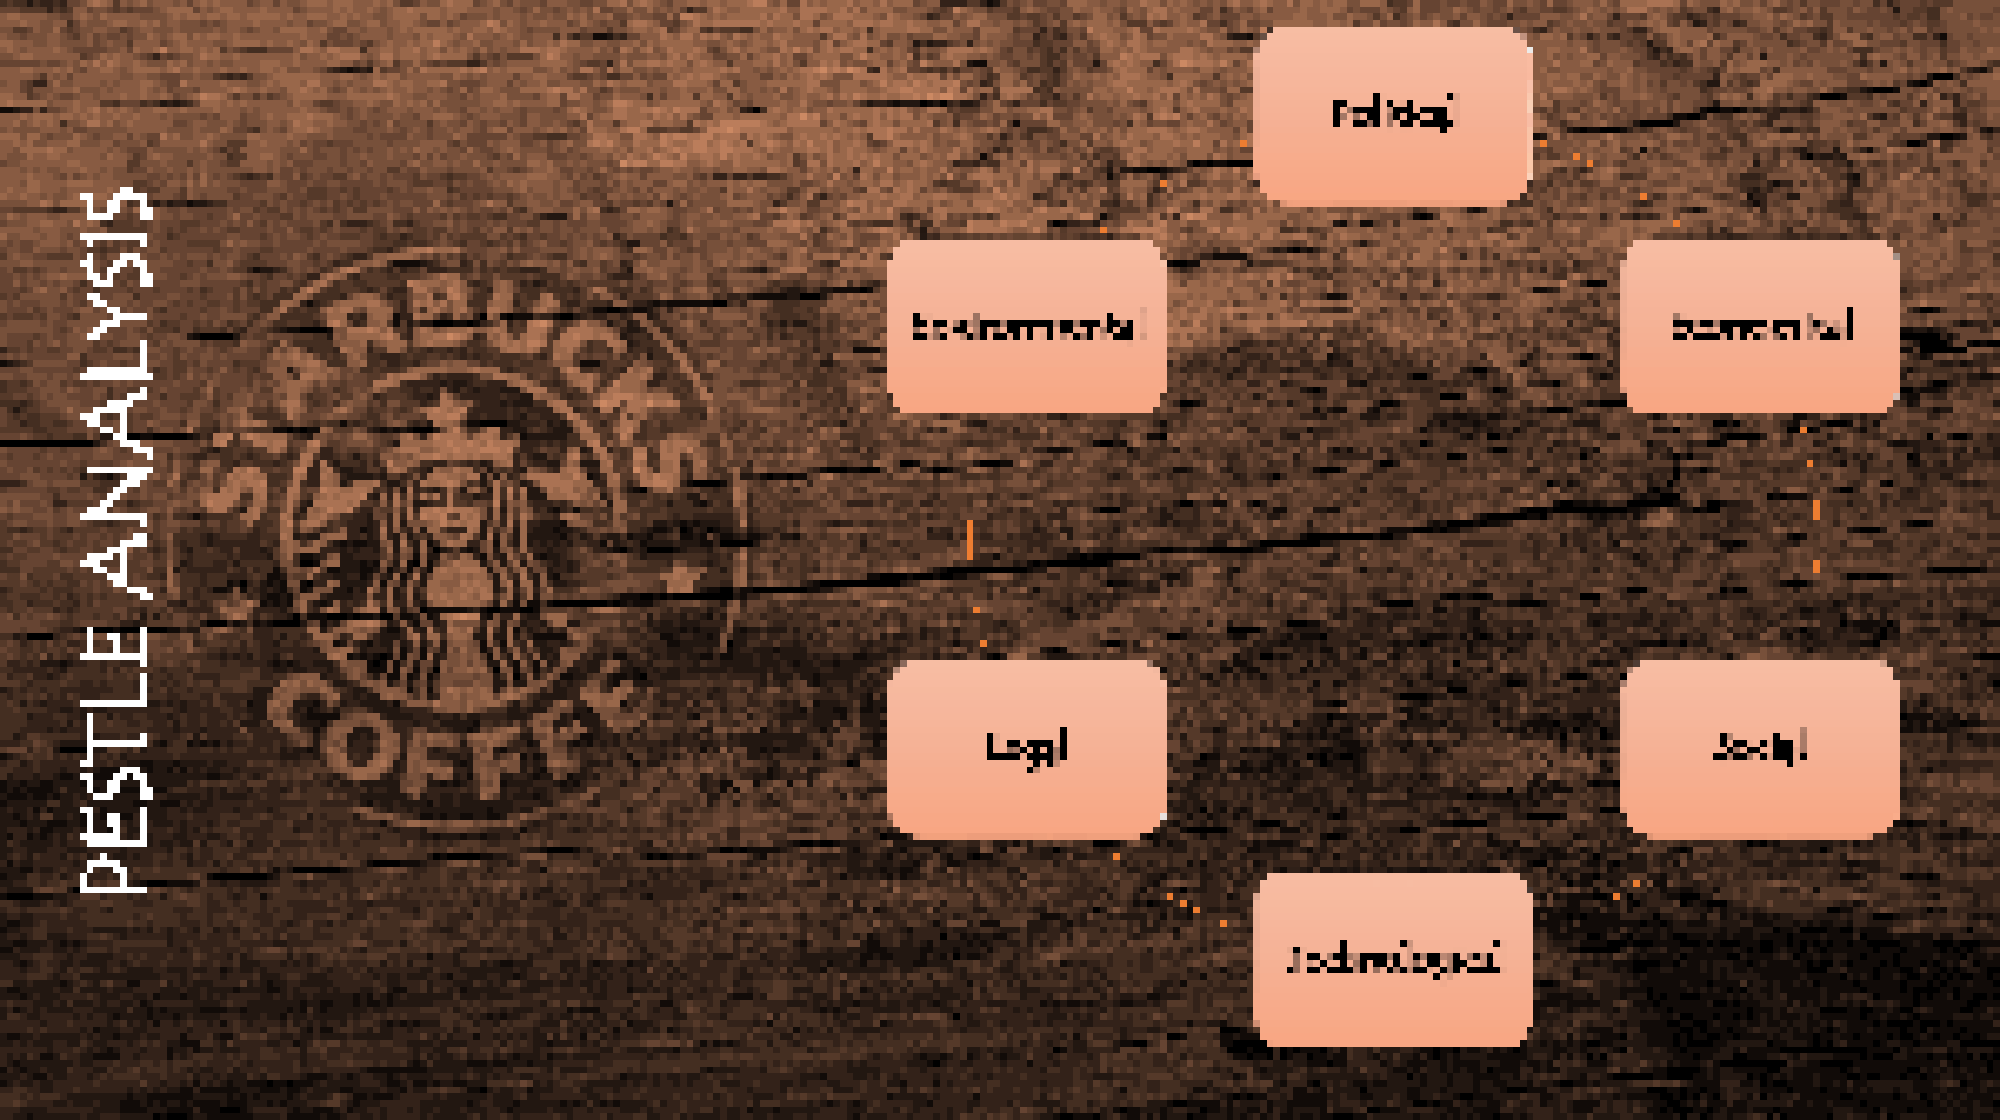 has starbuck s strategy evolved as the strategic vision has evolved Has starbuck's strategy evolved as the strategic vision has evolved all business that is not willing to grow with their customers will eventually fail yes, starbucks clearly understands their strategic.